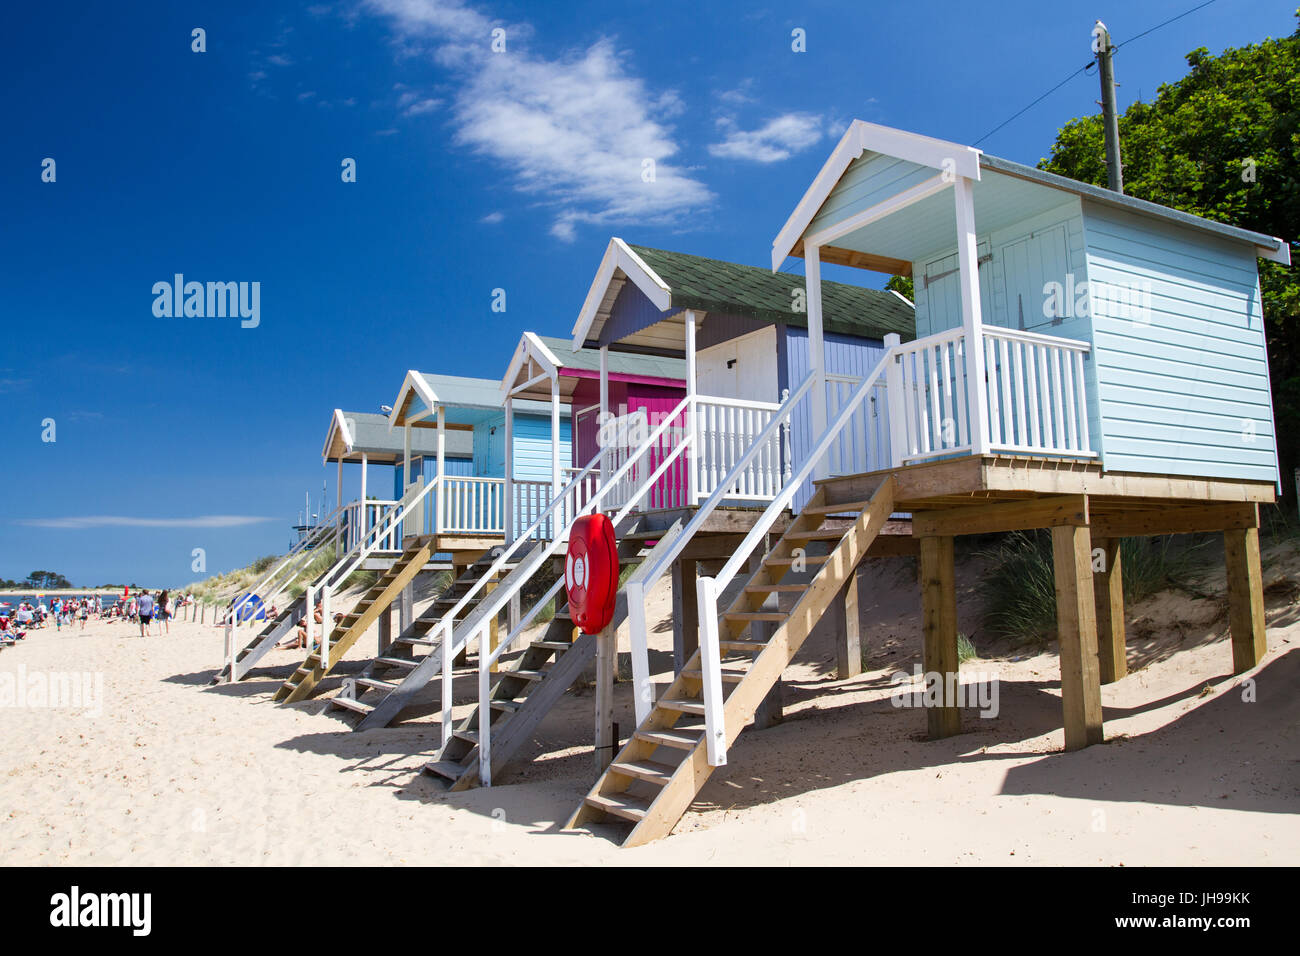 Rows of colourful beach huts on stilts on the sunny, sandy beach at Wells Next The Sea in Norfolk, UK which is a - Stock Image